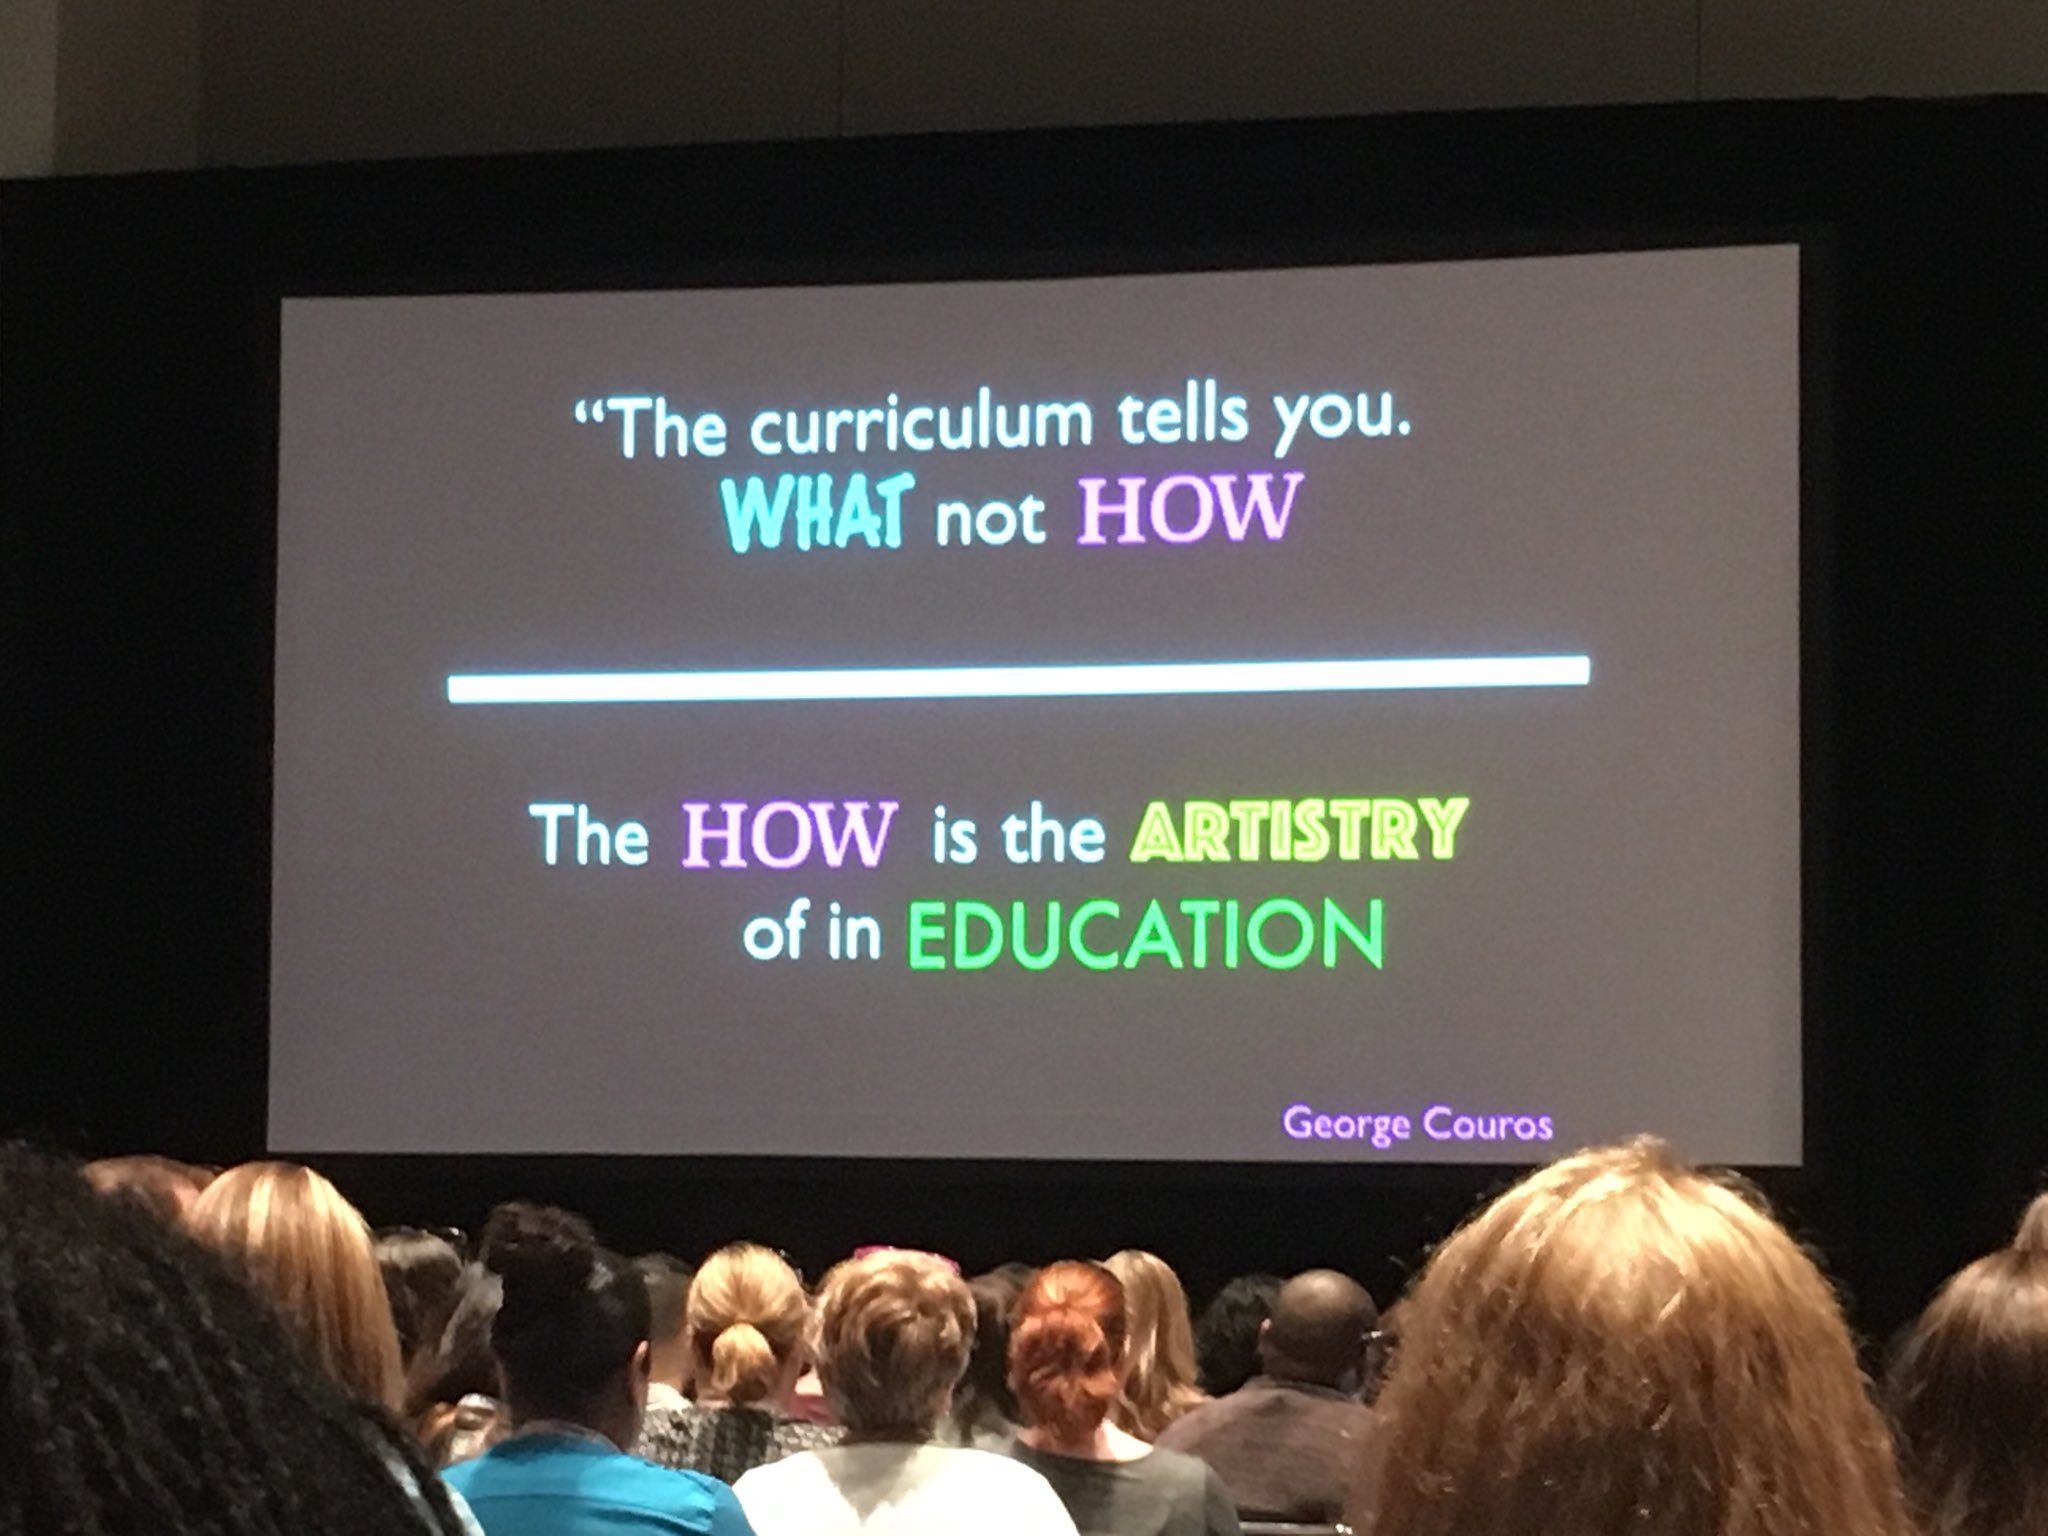 """The curriculum tells you what not how. The how is the artistry of in education."" - George Couros. Thanks Marcia Kish @dsdPD for awesome #ISTE18 session on how of blended learning https://t.co/hCSxz9GuOh"